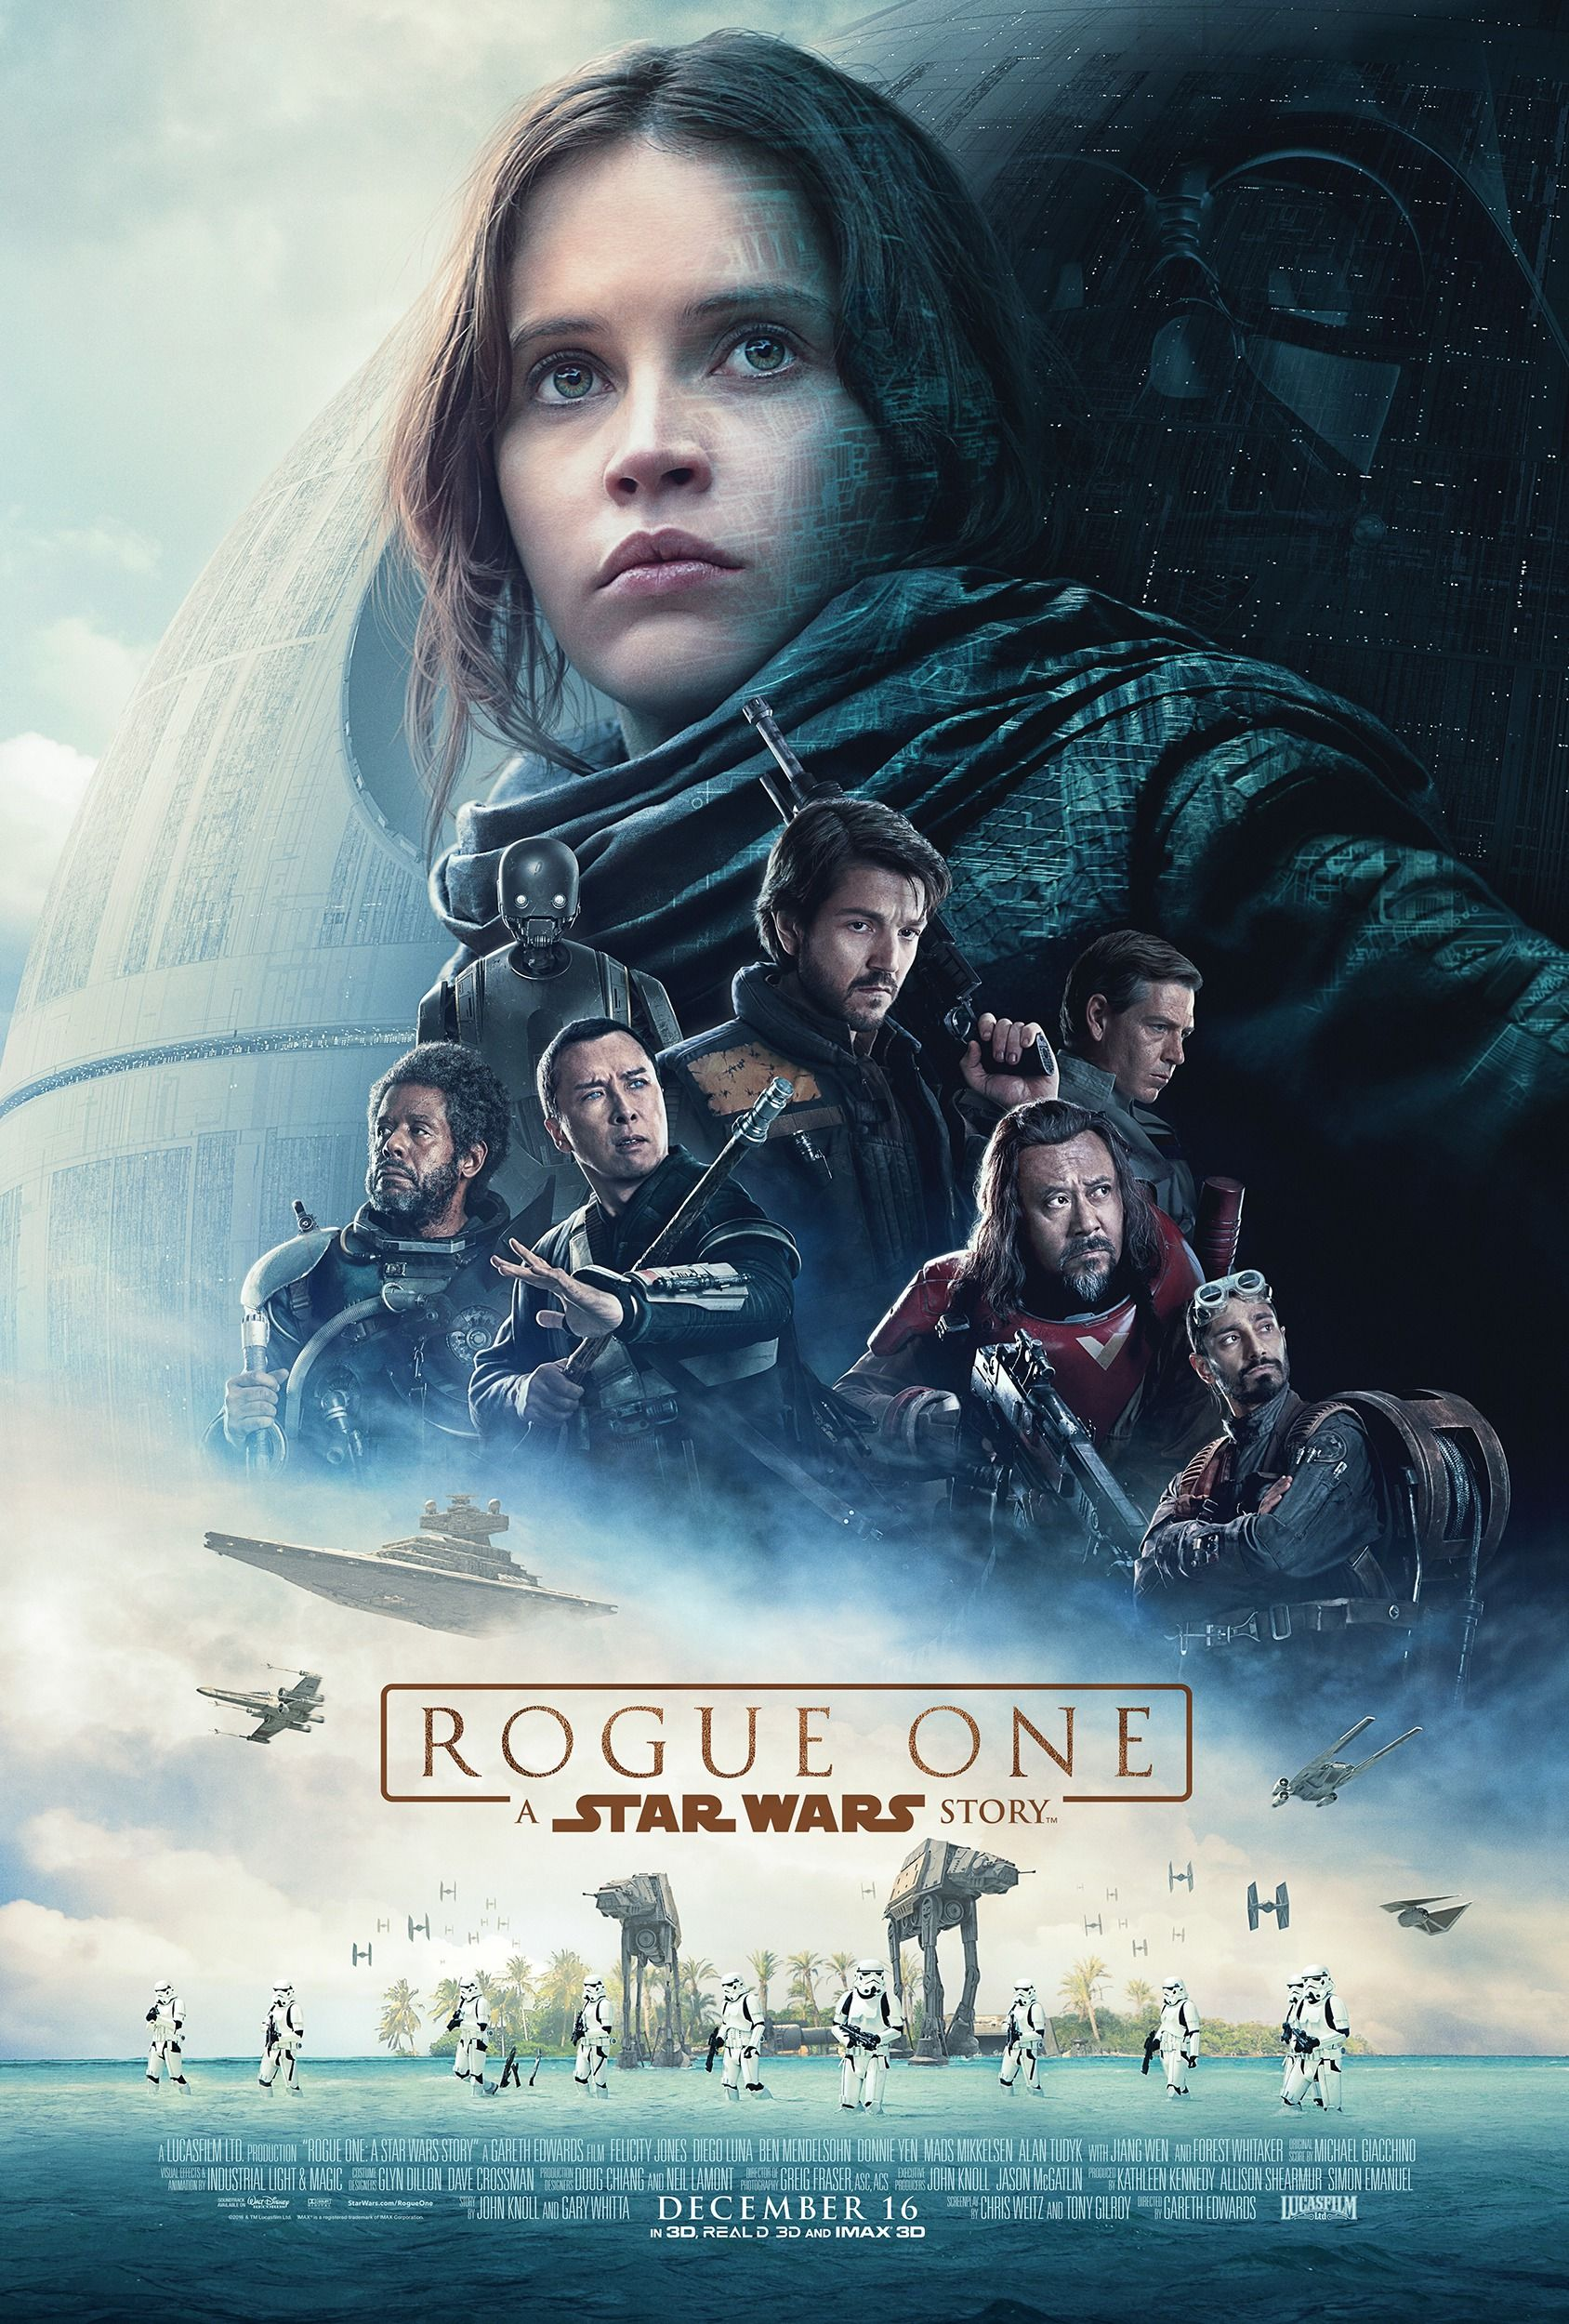 Rogue One A Star Wars Story 2016 Movie Posters Star Wars Poster Star Wars Sanati Star Wars